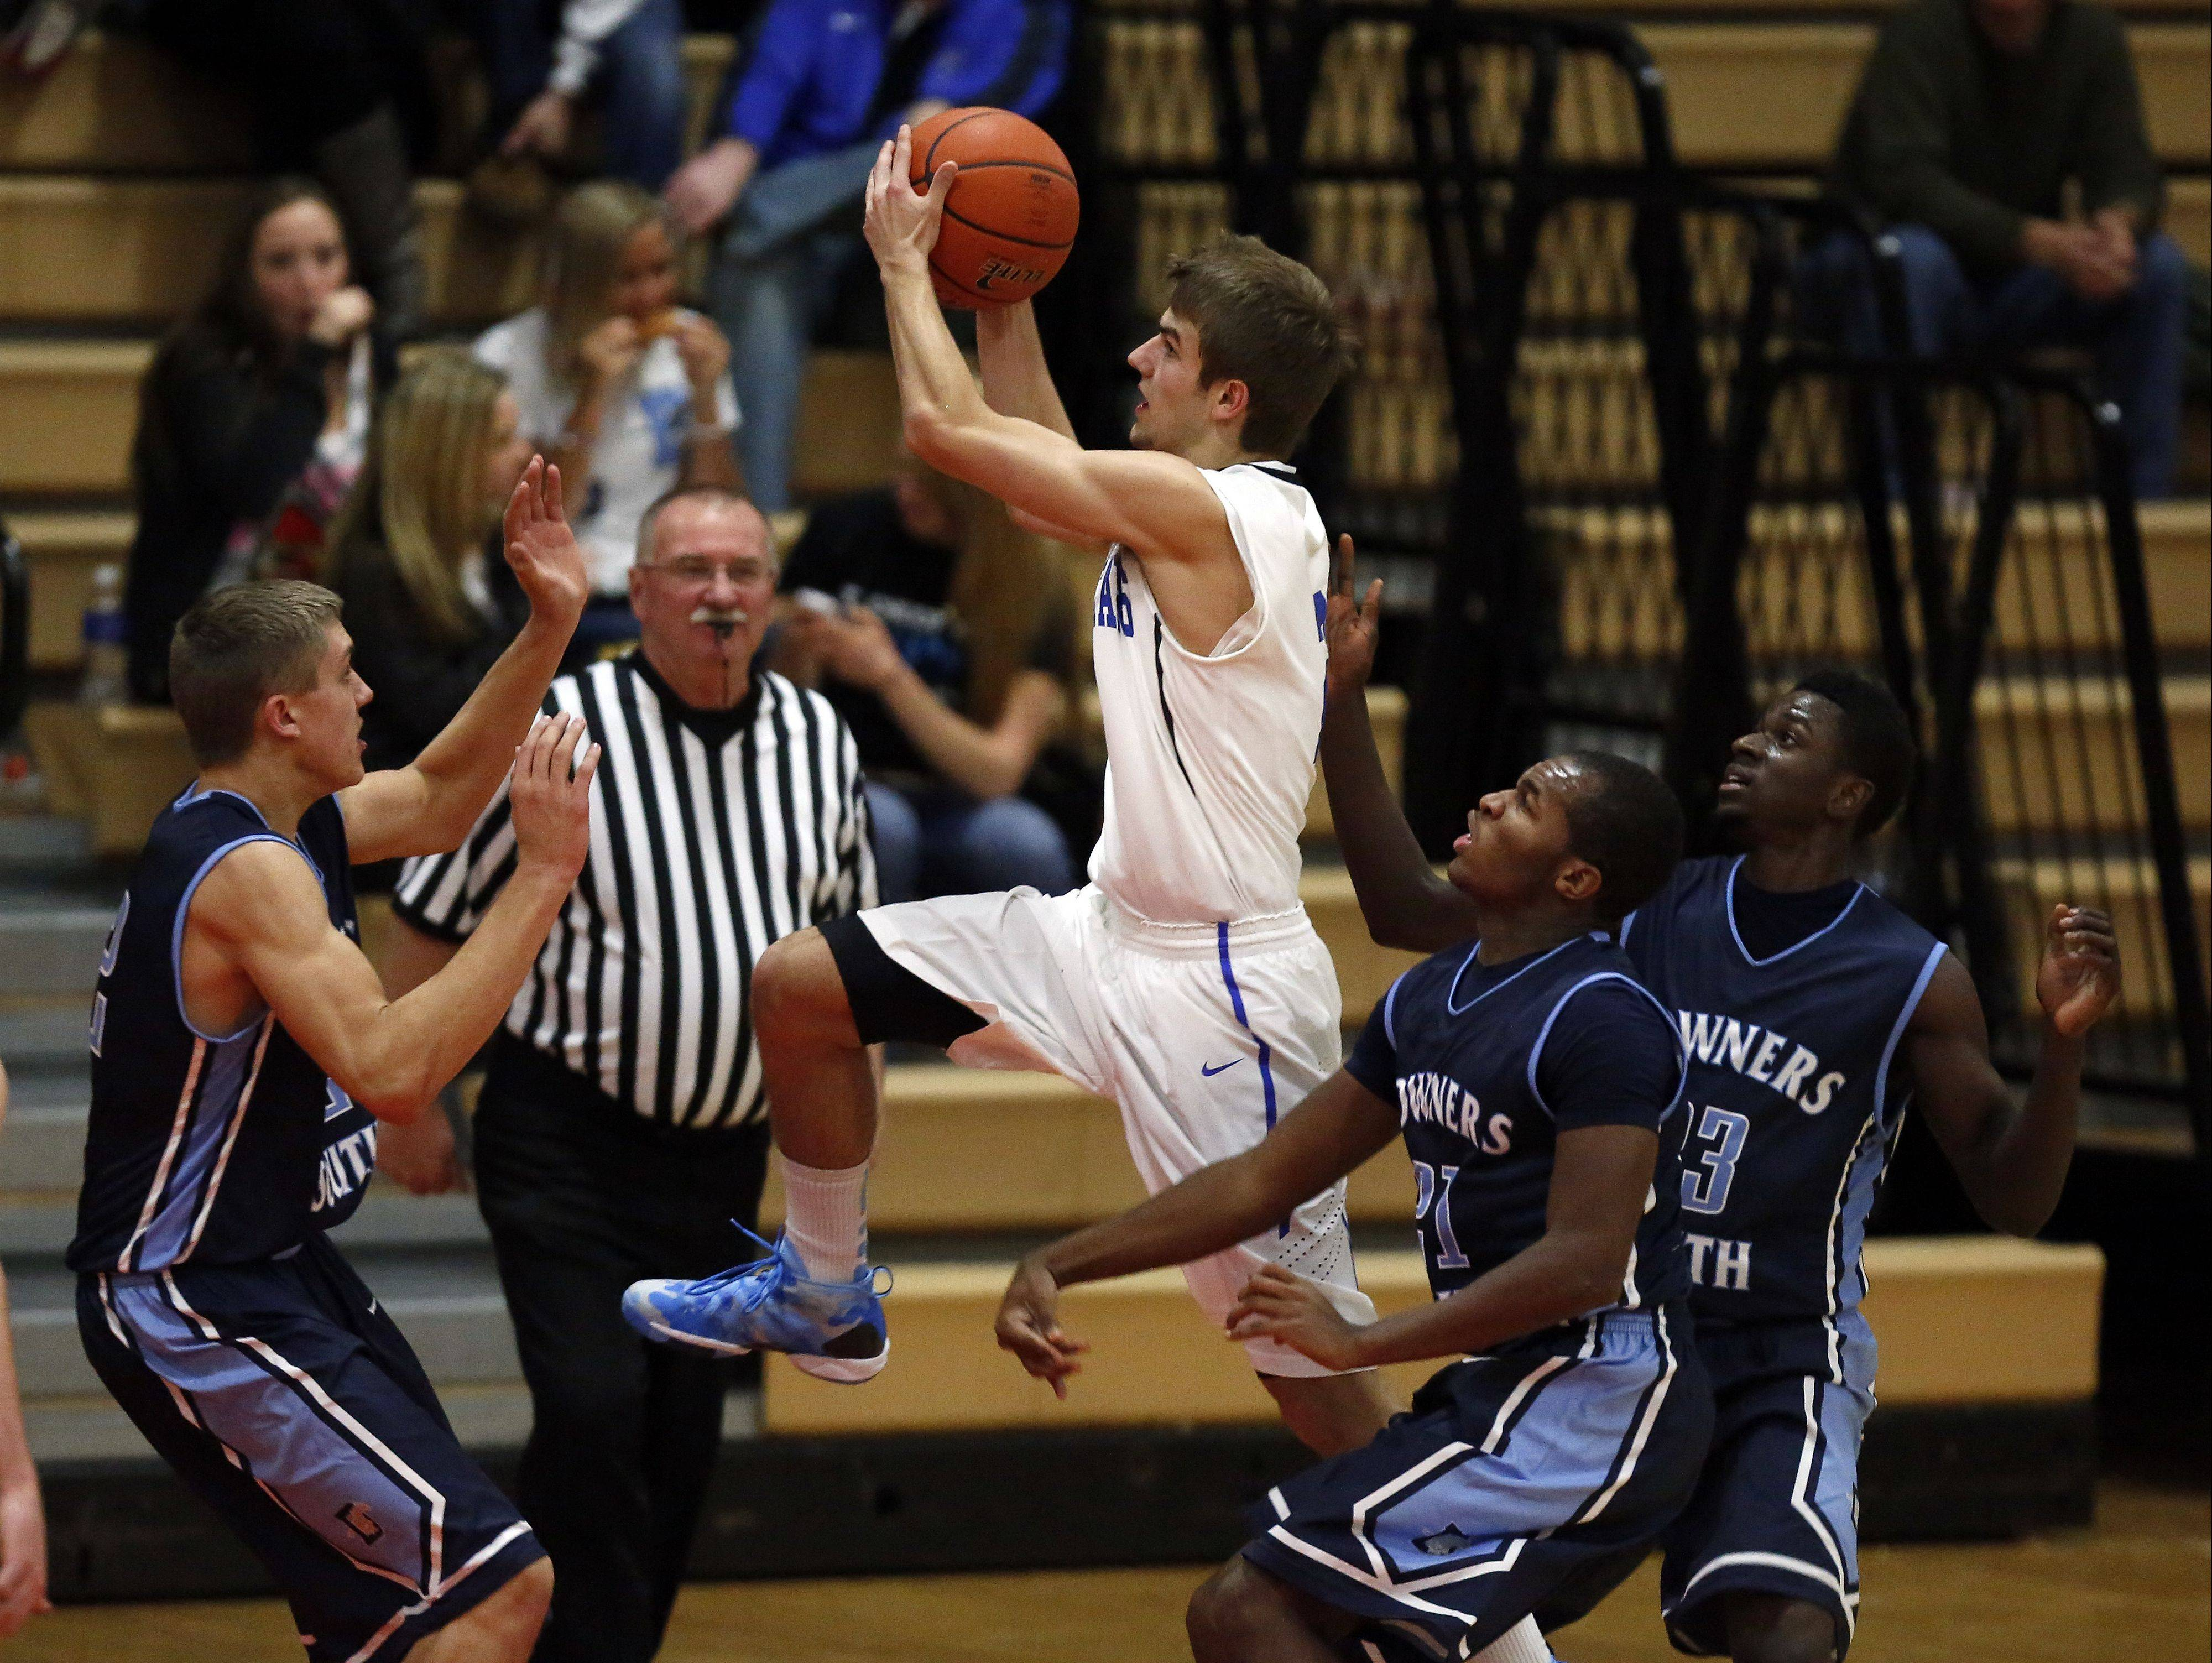 St. Charles North's Jake Ludwig, 2, splits Downers Grove South players TJ Clifford, 42, Javon Turner, 21, and Paul Engo III, 23, during the Ron Johnson Thanksgiving Tournament Friday in St. Charles.